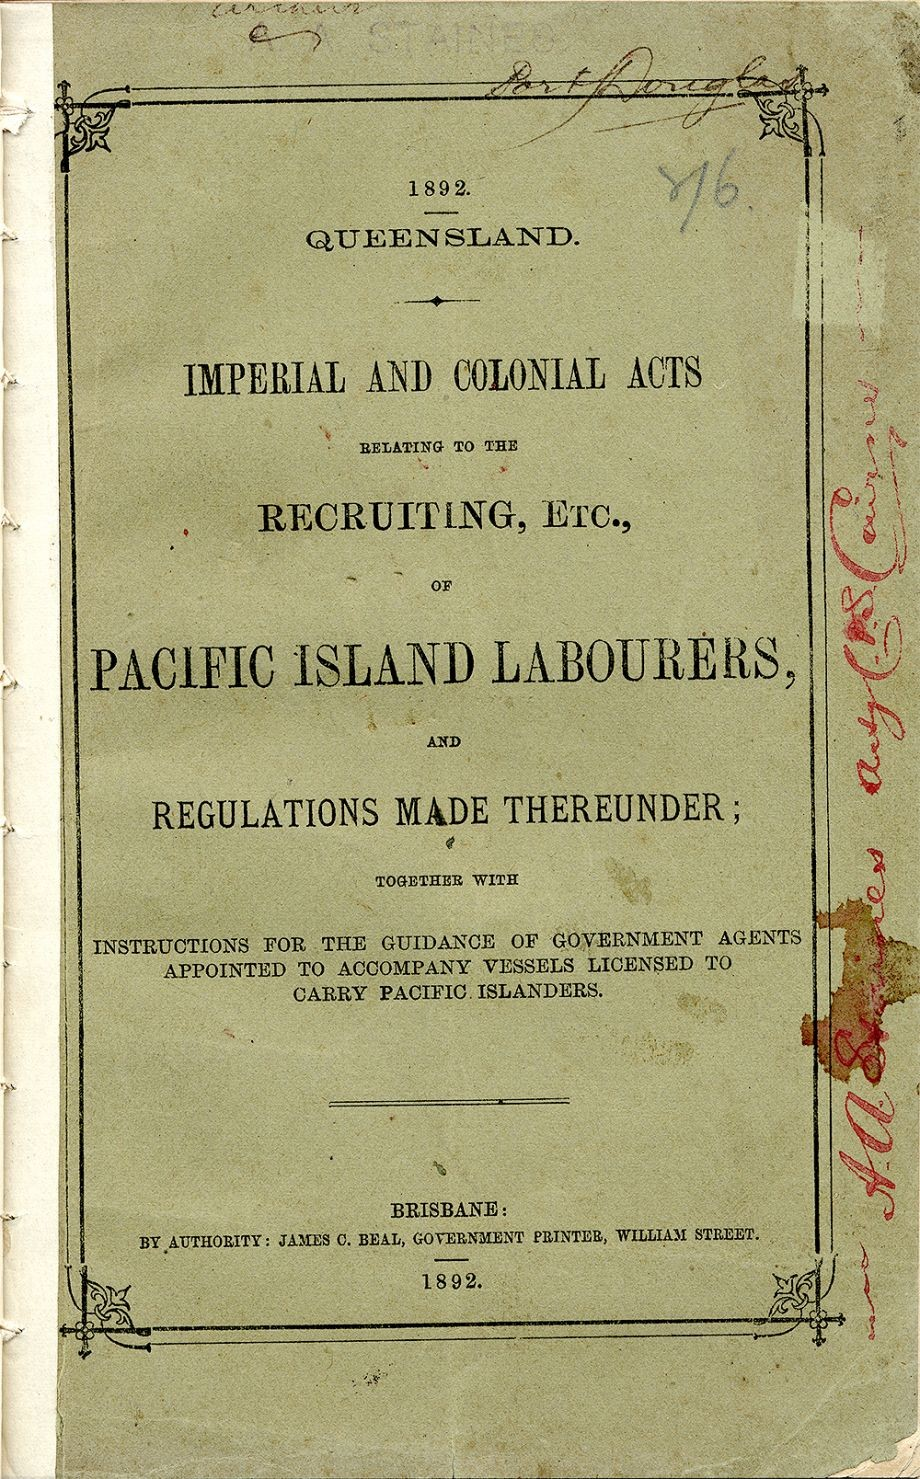 1892 Imperial and colonial Acts relating to the Recruiting etc of Pacific Island Labourers and regulations made thereunder together with instructions for the guidanceof Government Agents to accompany vessels to carry Pacific Islanders